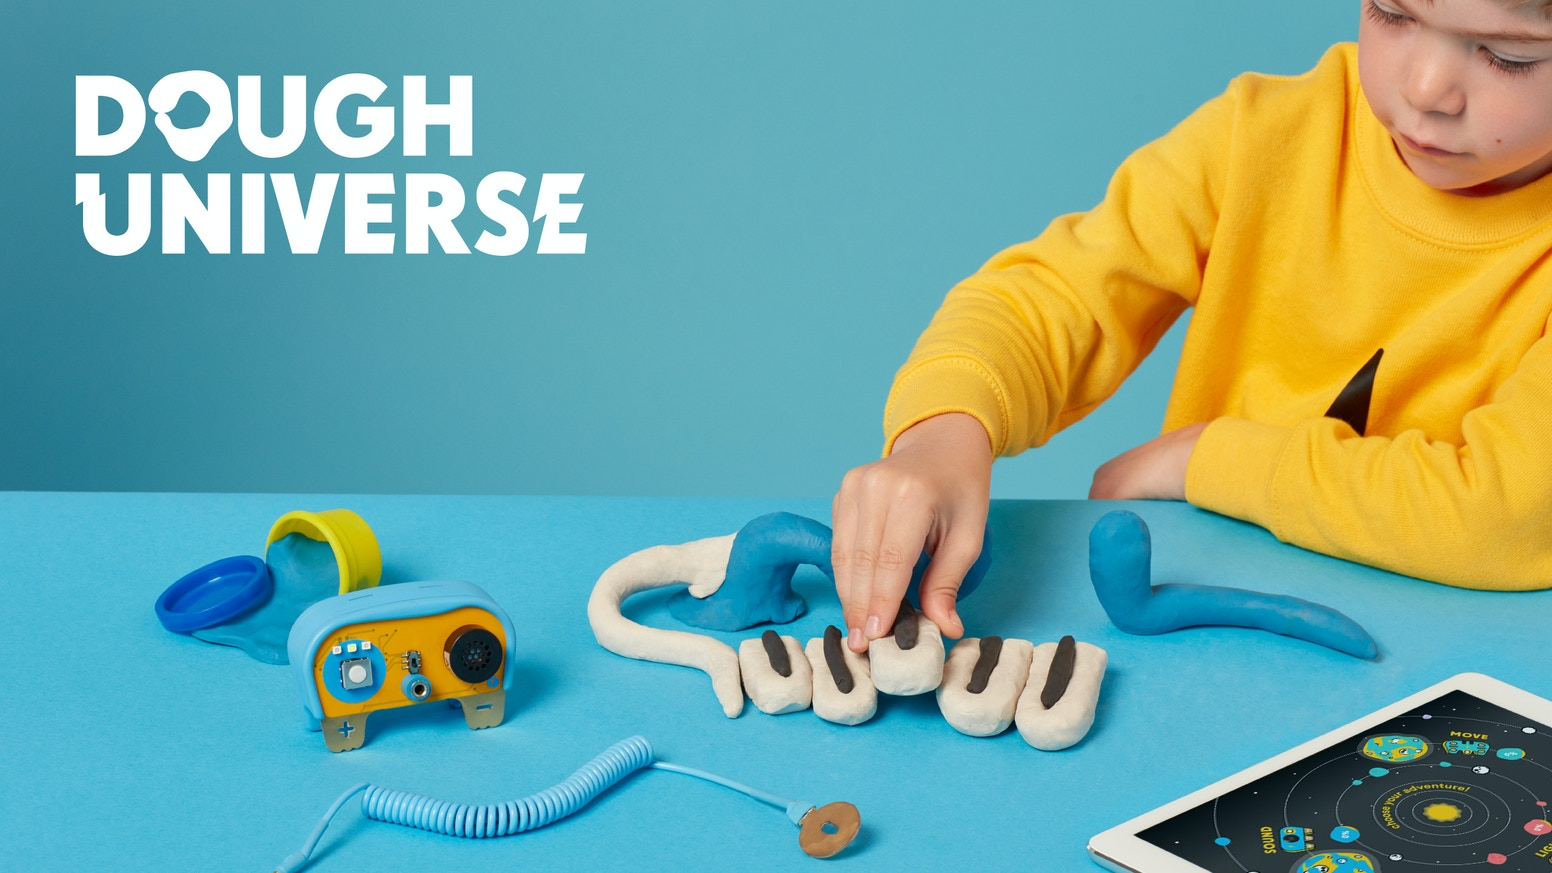 Dough Universe has ended - thank you for your support! You can now buy the kits on our website below.